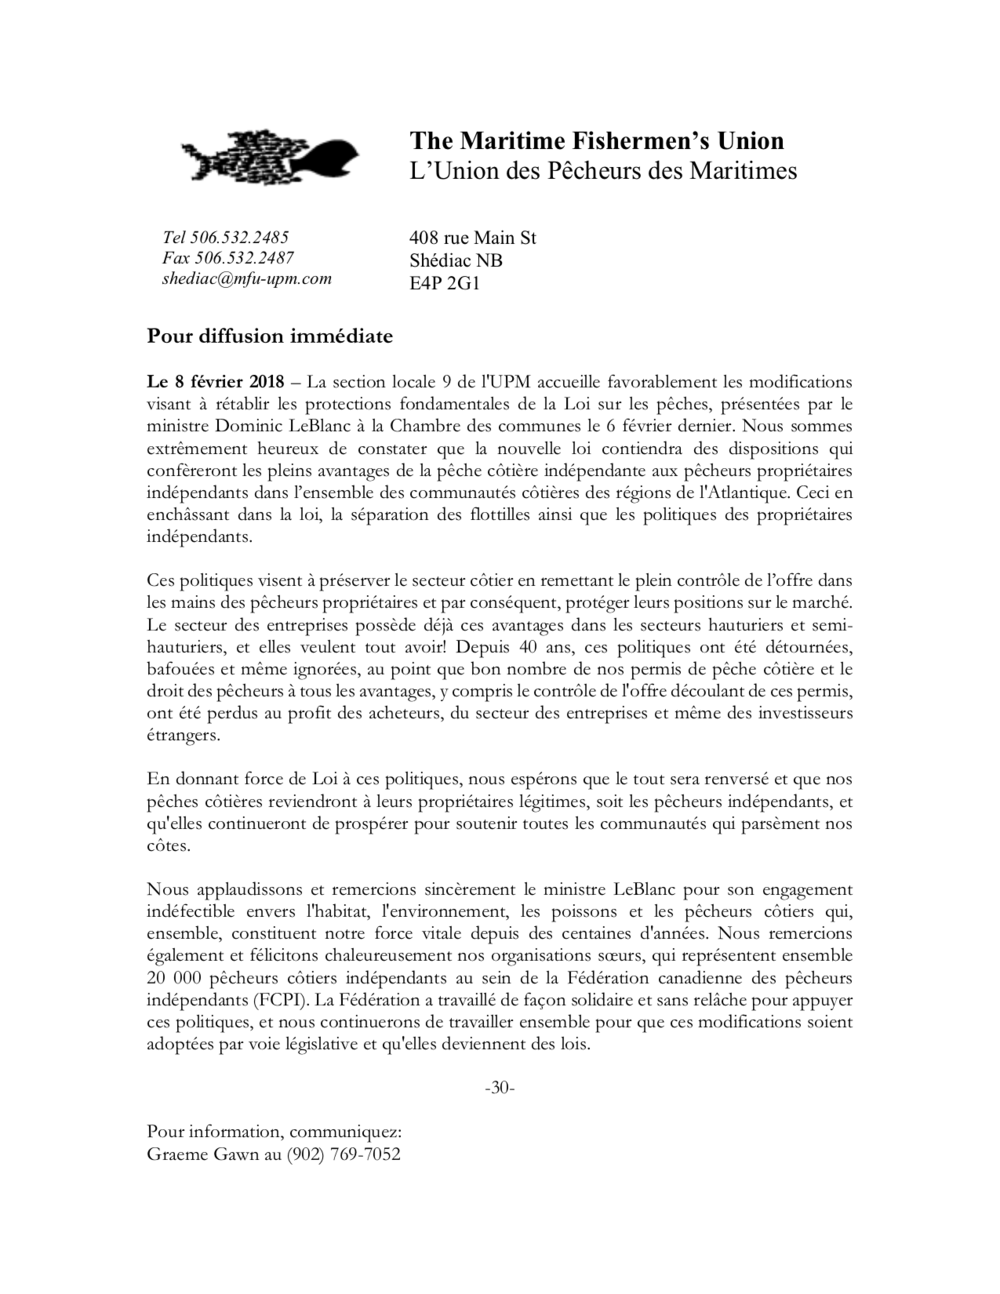 CommPress_Local9_9février2018[3] (dragged).png